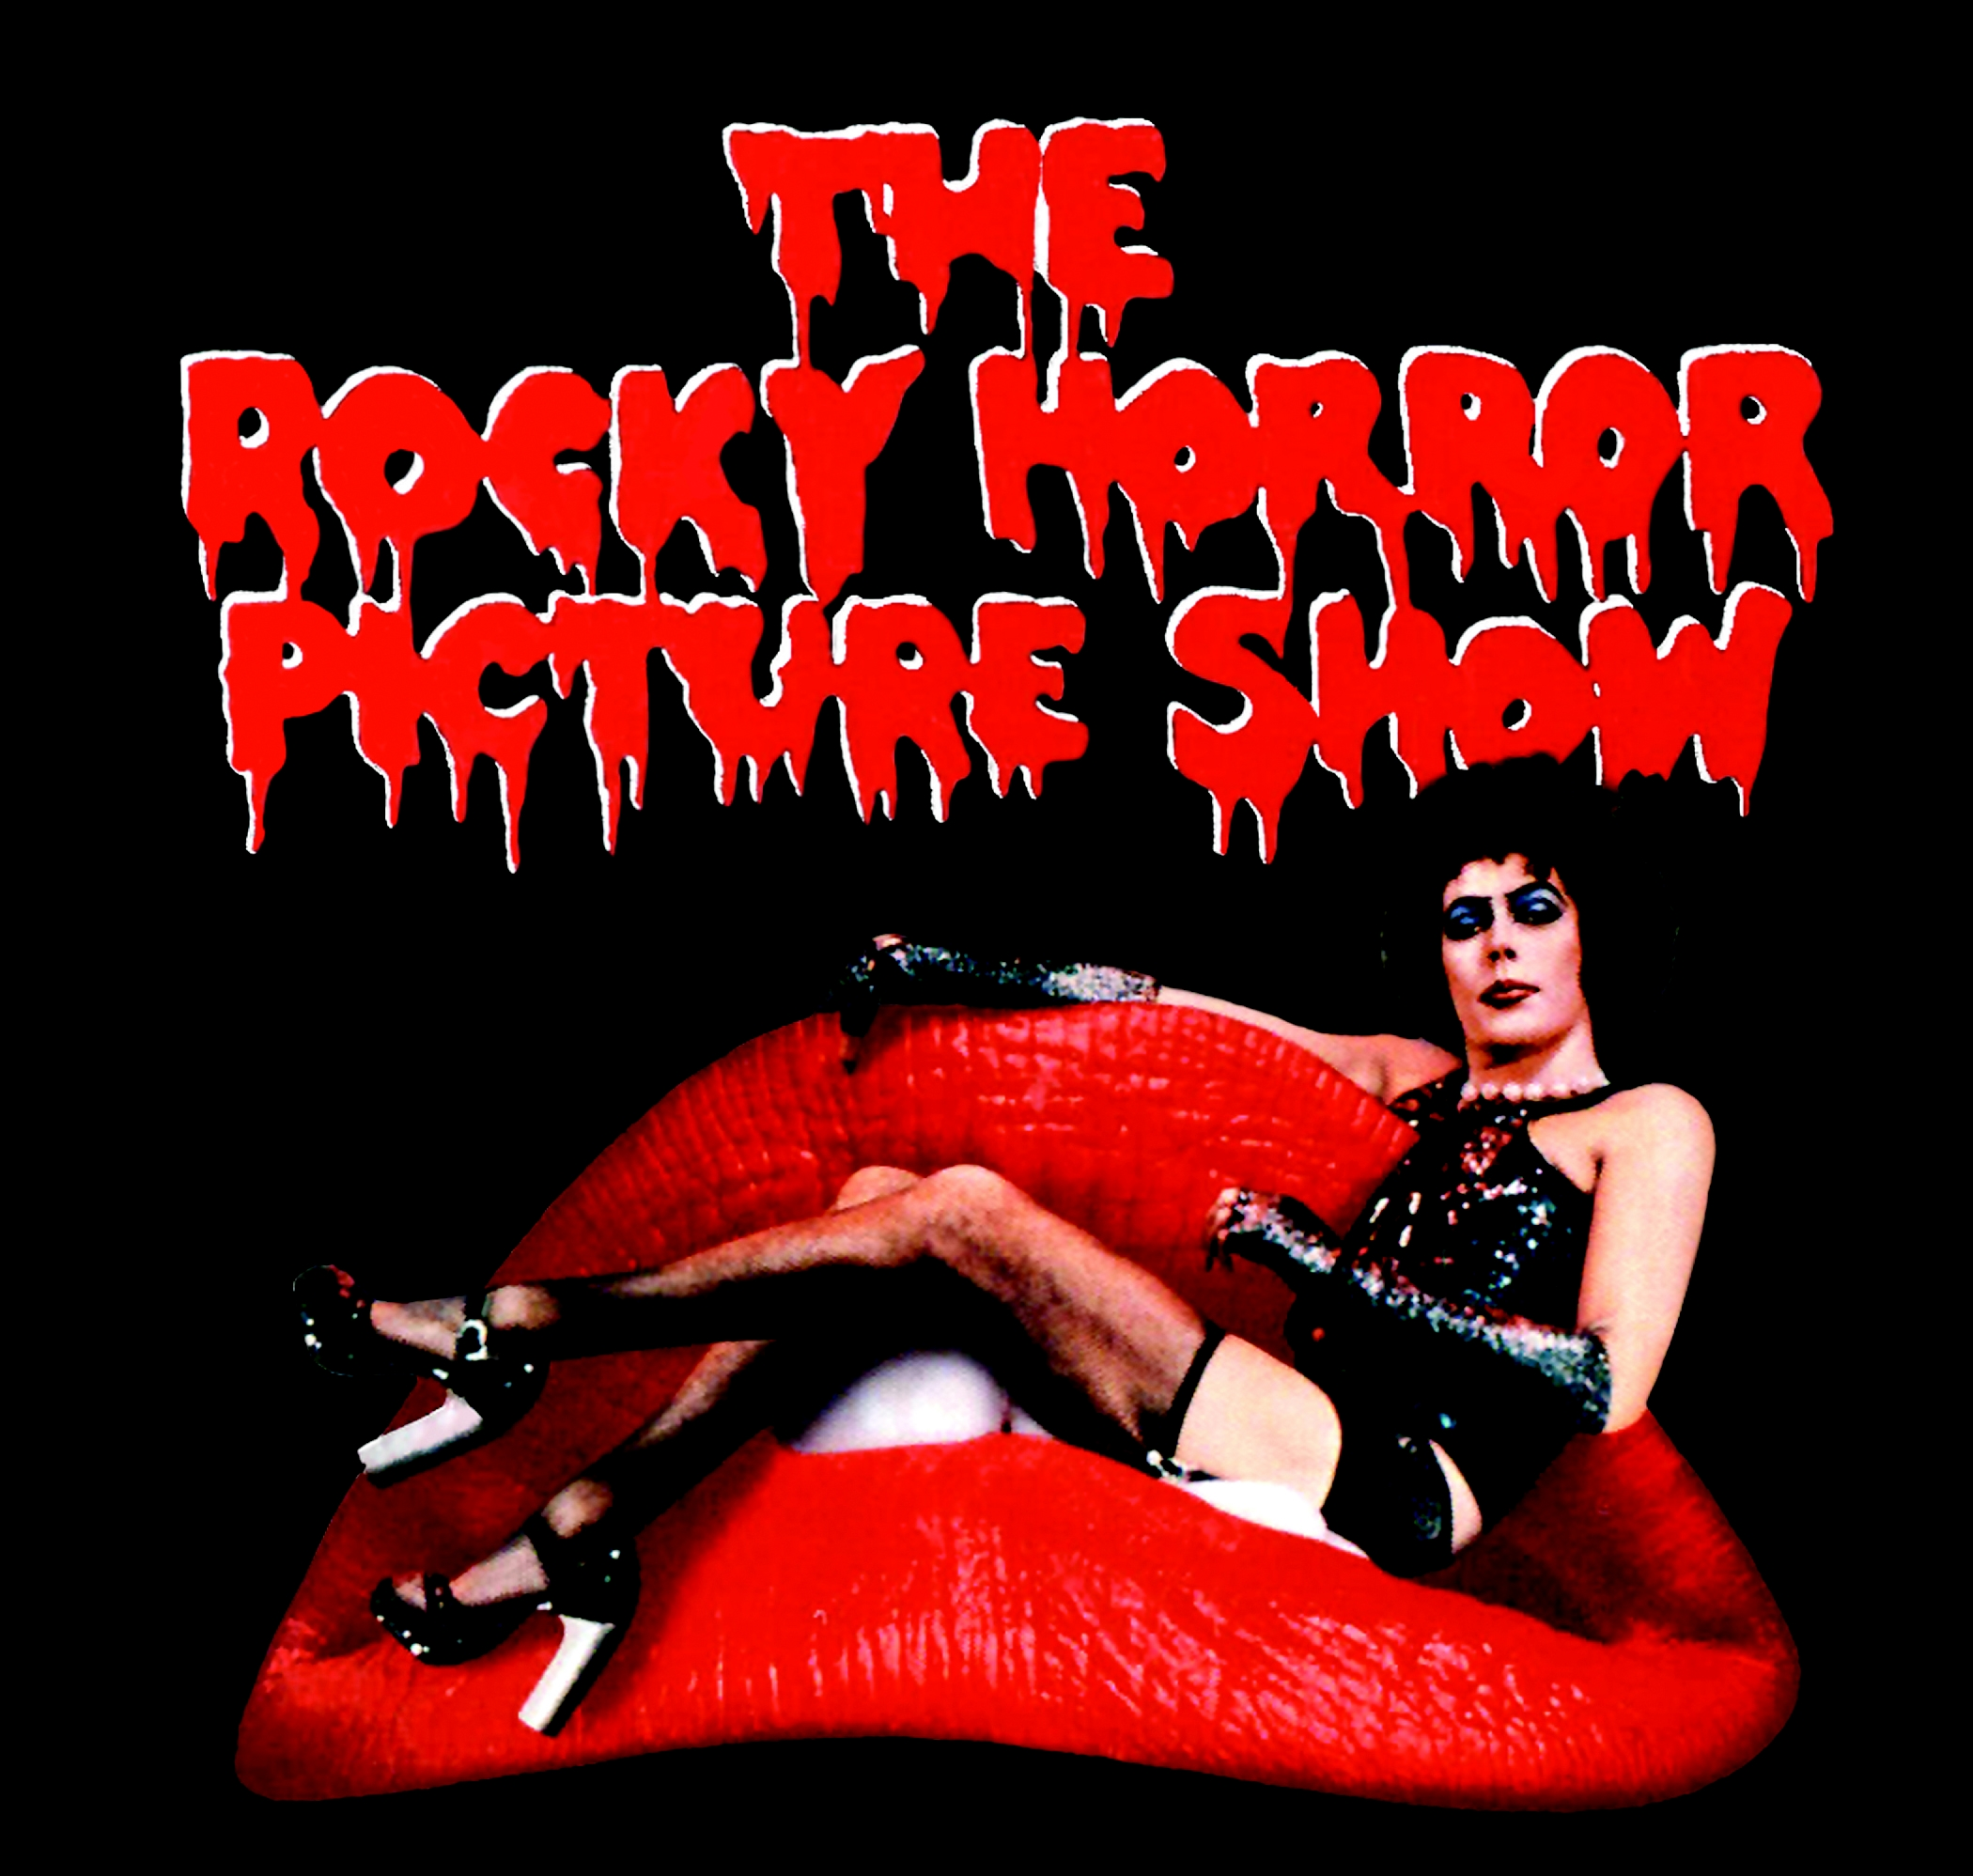 [Image: The-Rocky-Horror-Picture-Show.jpg]